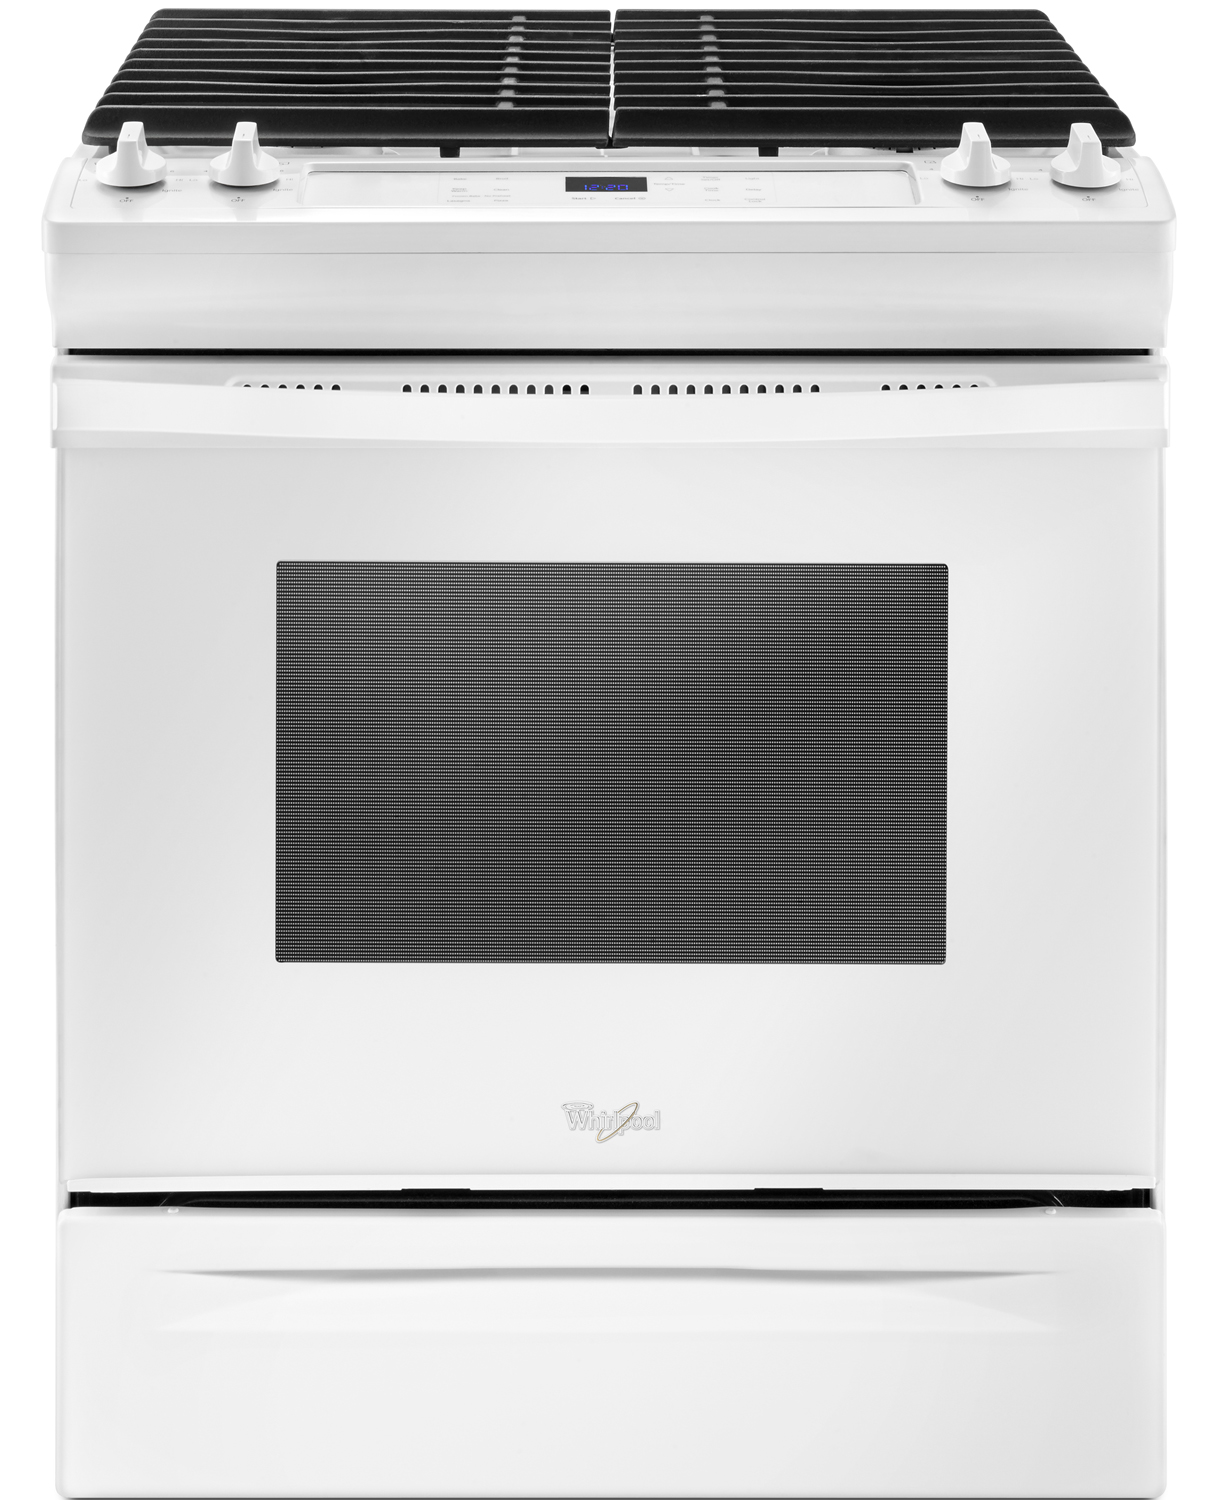 Whirlpool White Slide-In Gas Range